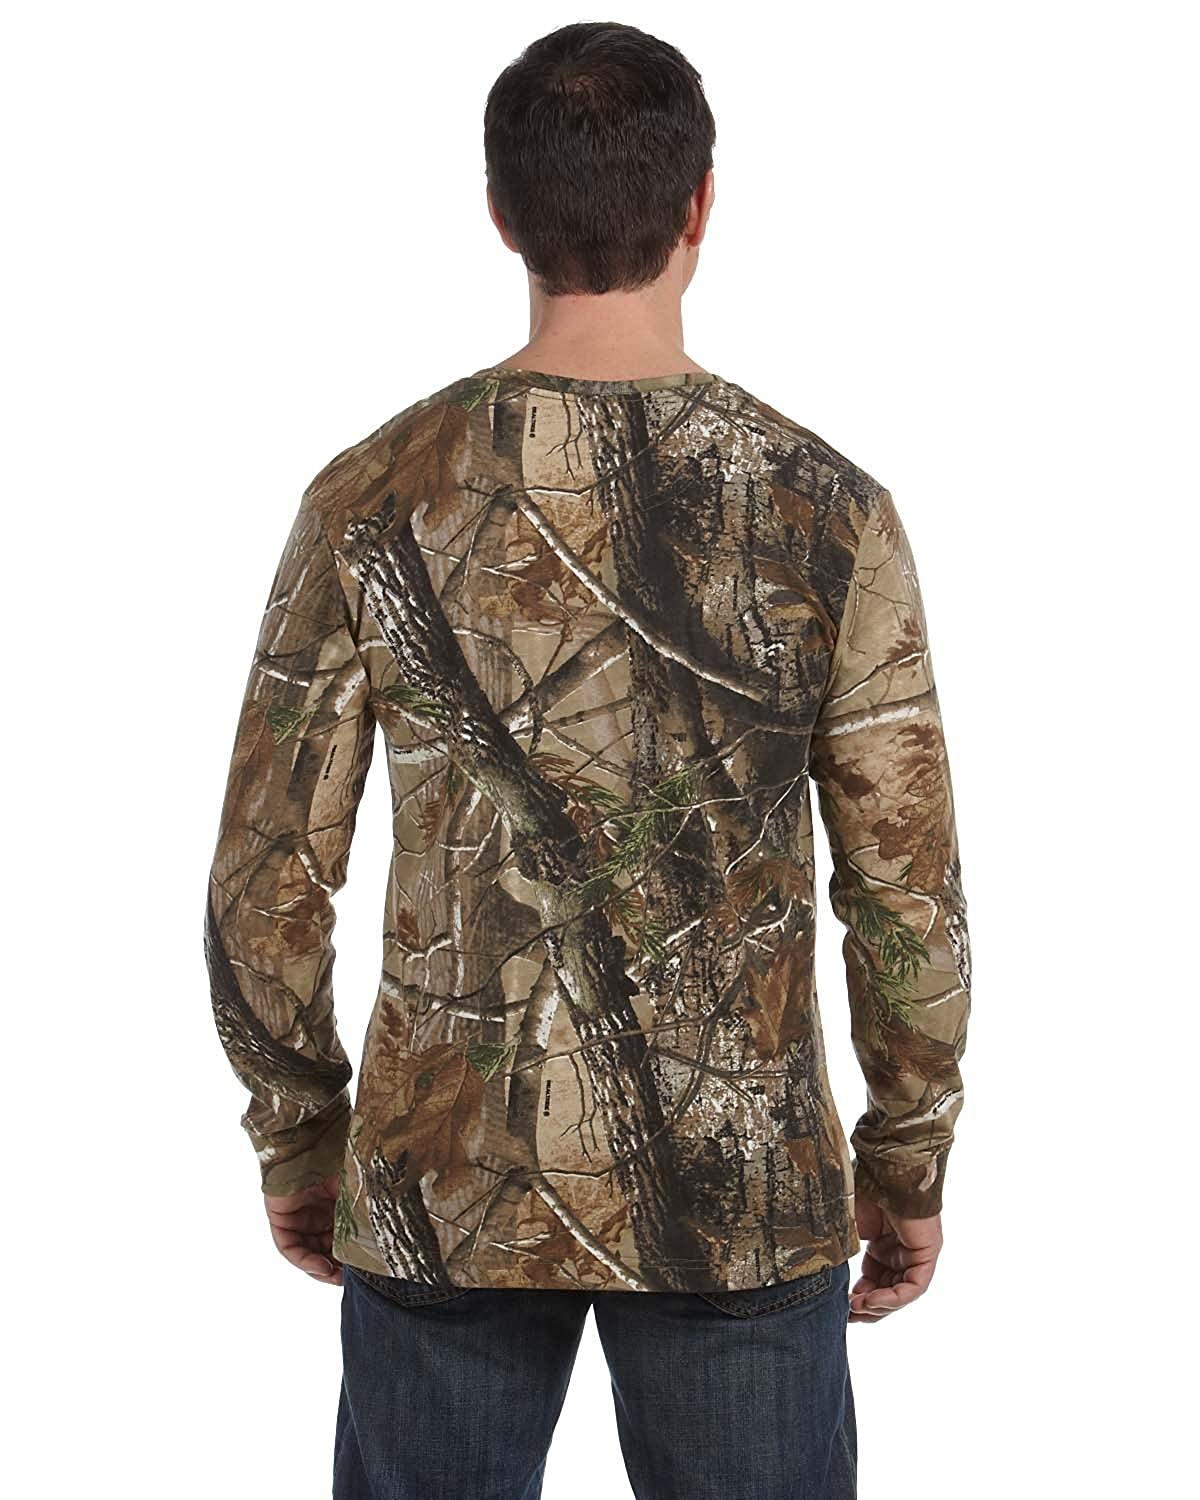 Code Five Officially Licensed REALTREE Camouflage Long-Sleeve T-Shirt